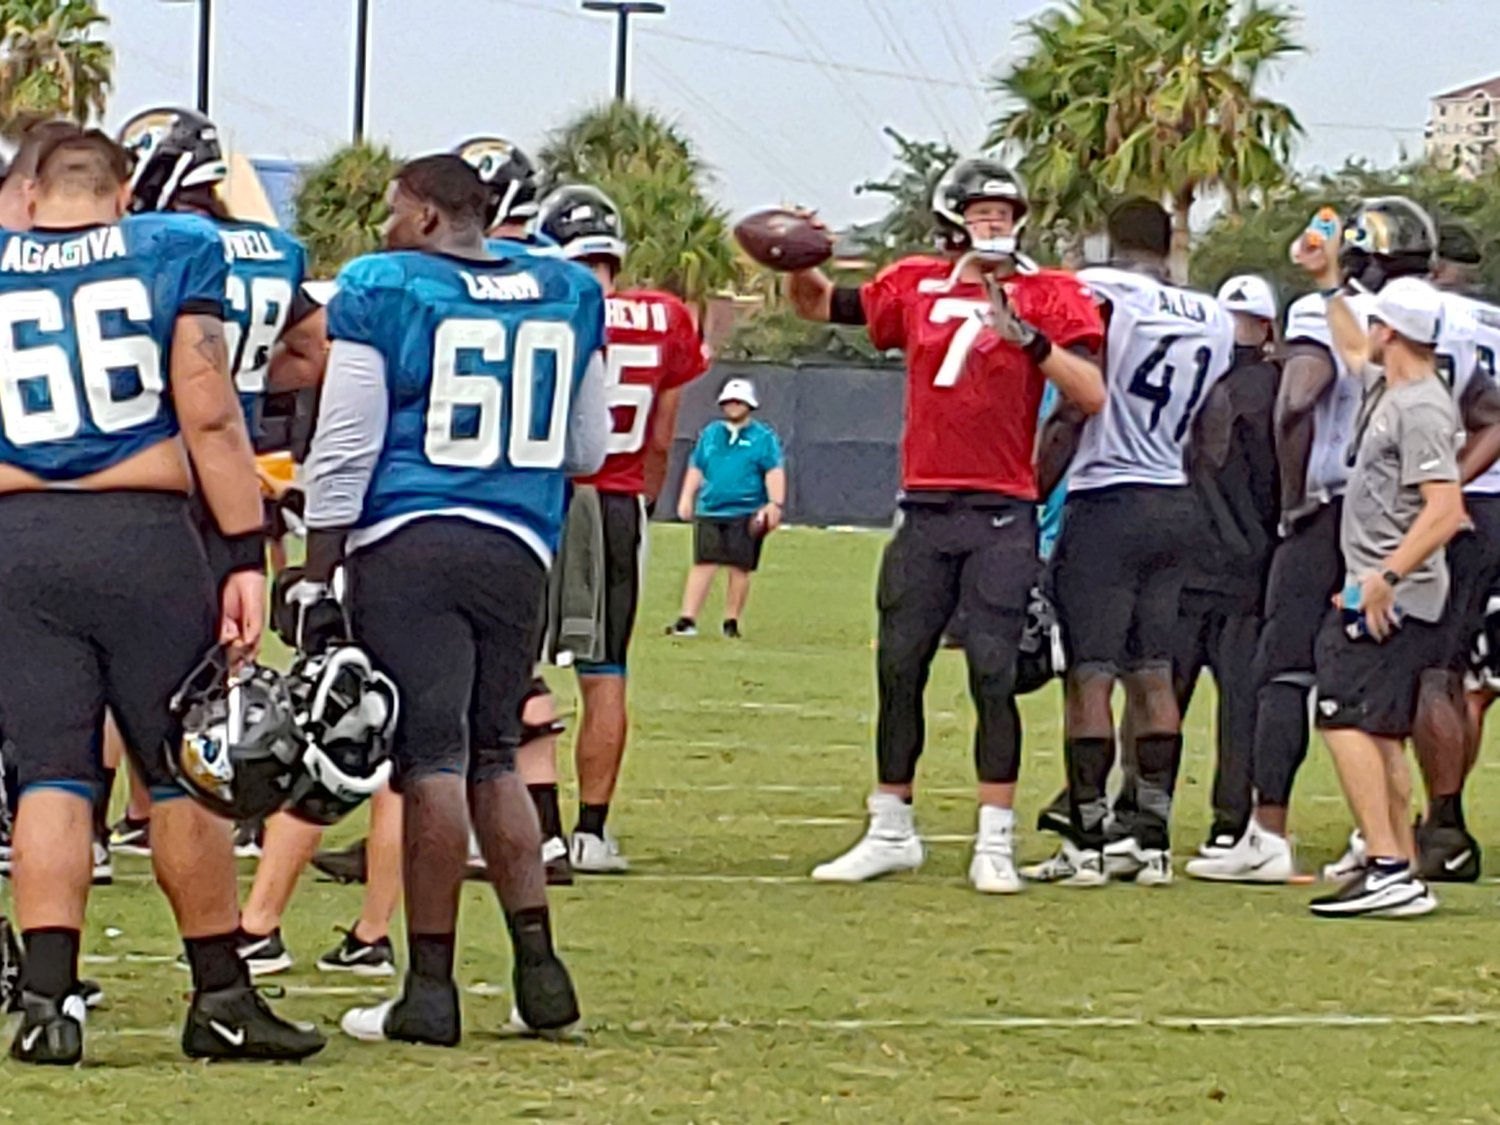 Starting QB for the Jags, Nick Foles, warmup his throwing arm before drills.